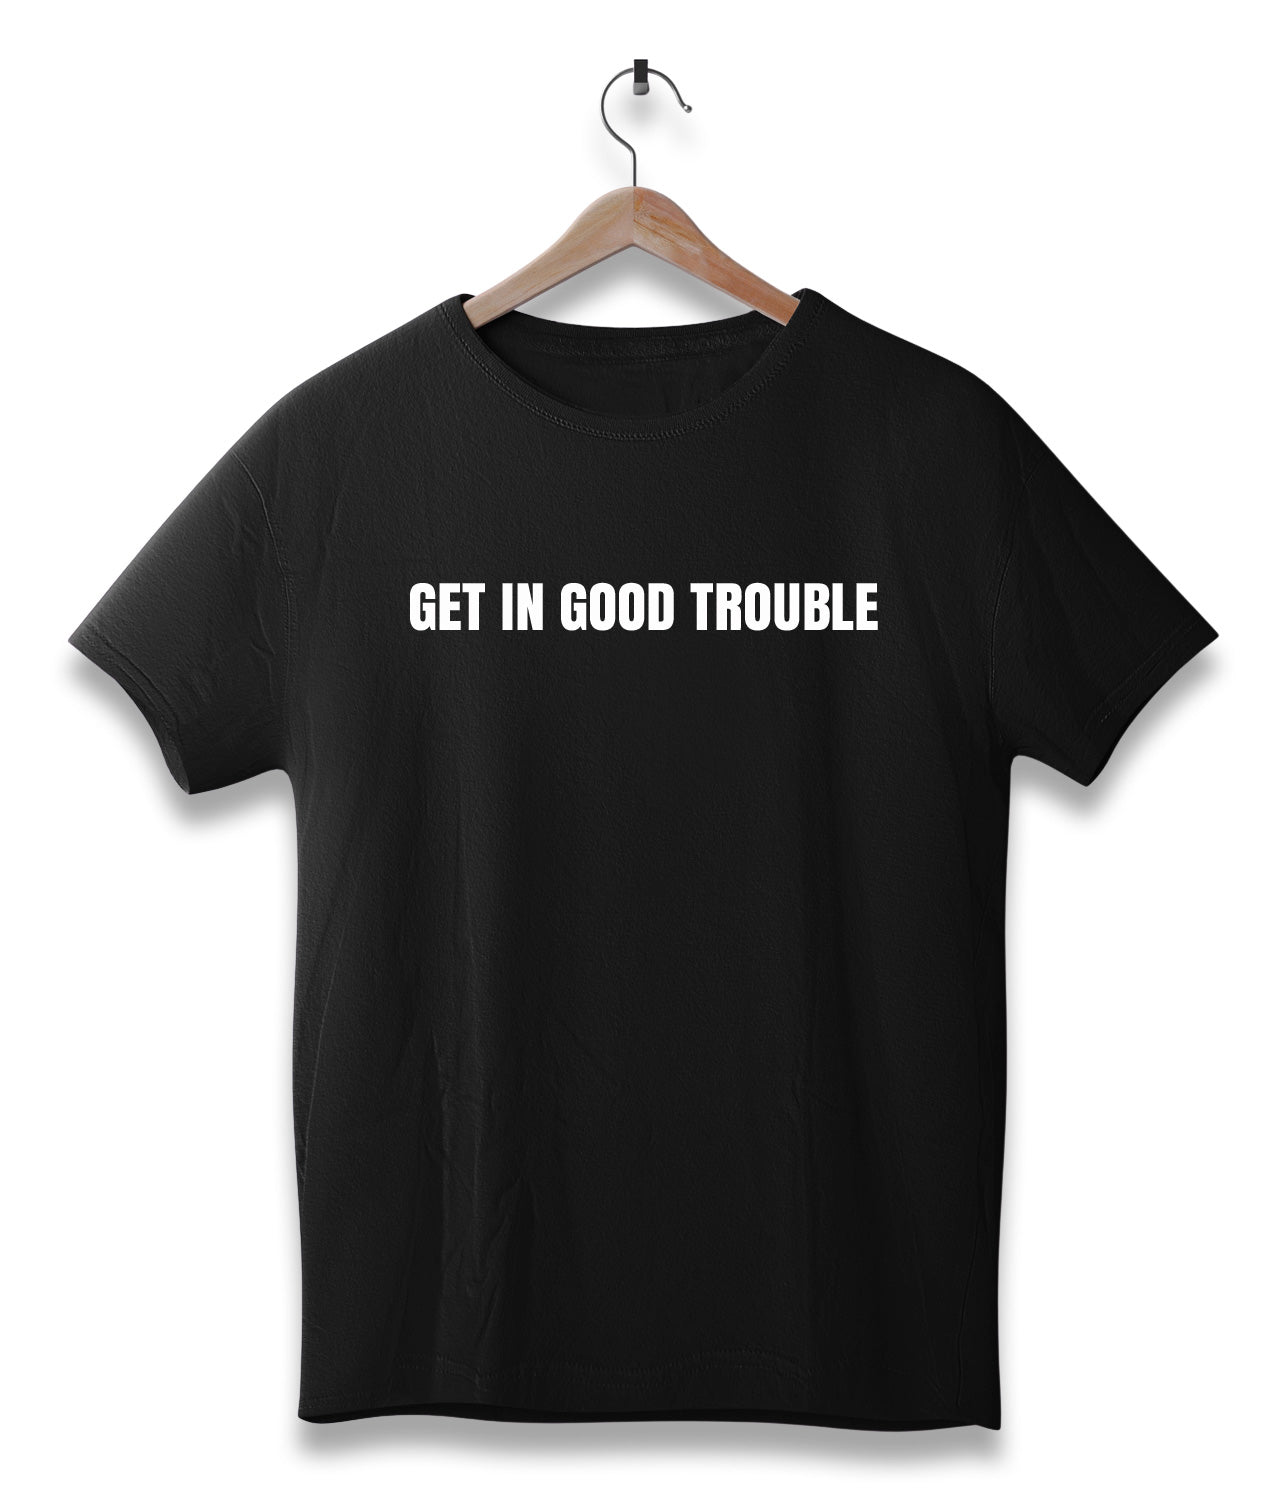 Get in good trouble